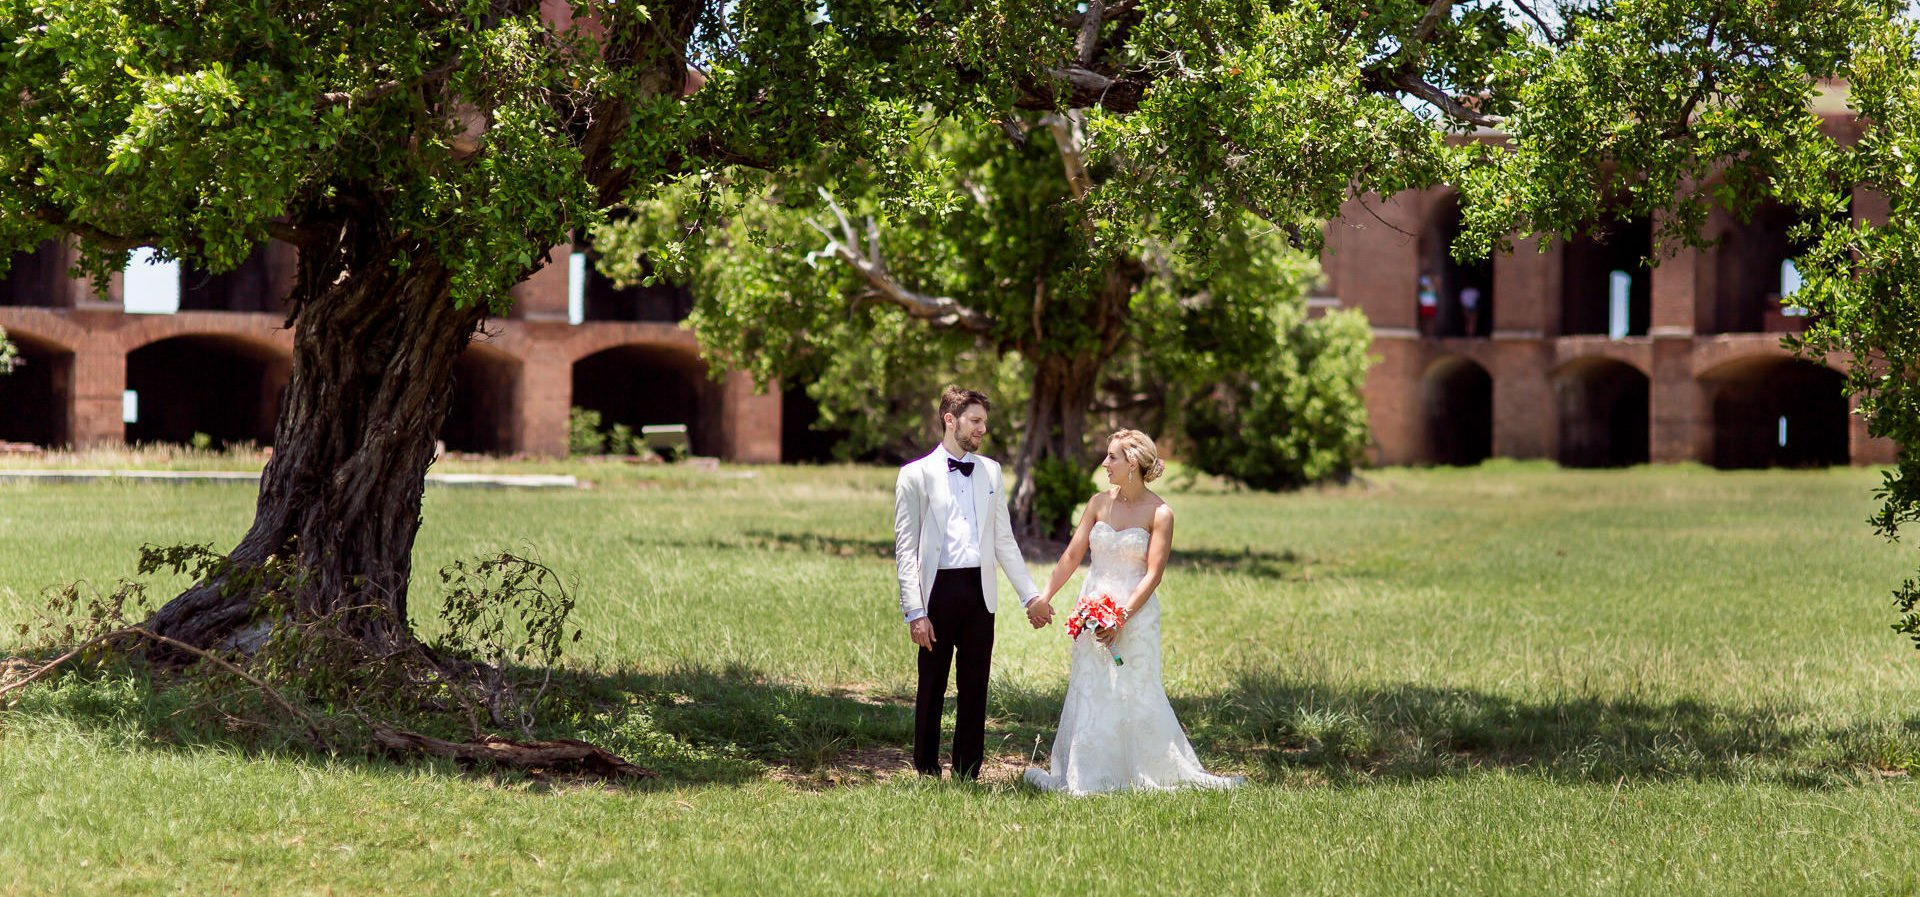 fort jefferson dry tortugas wedding photographer